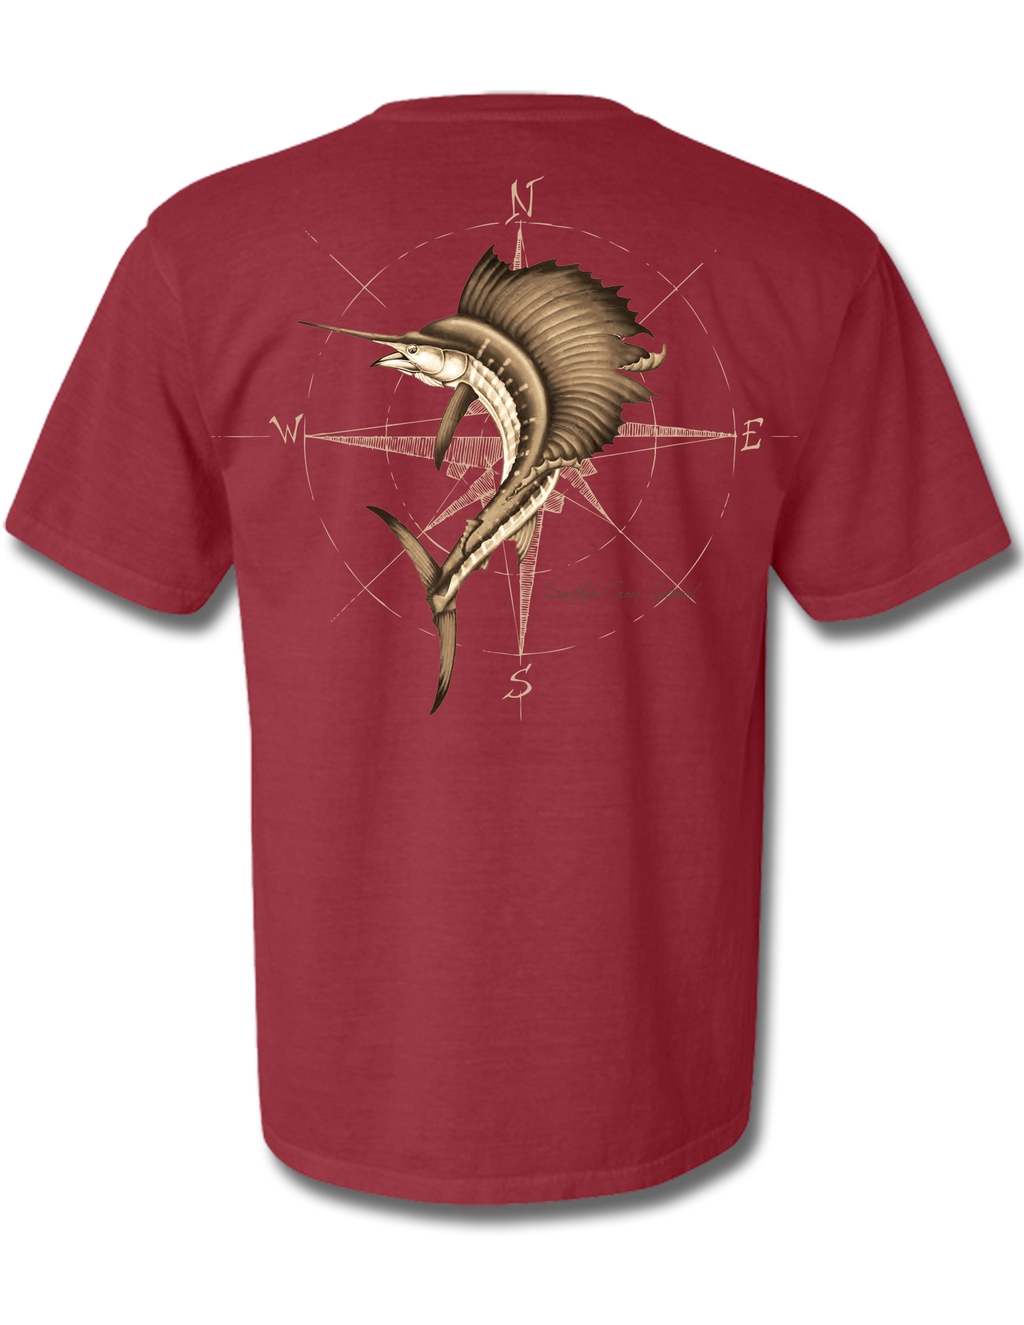 4 Winds Crimson Short Sleeve Small, T-Shirts - Southern Cross Apparel